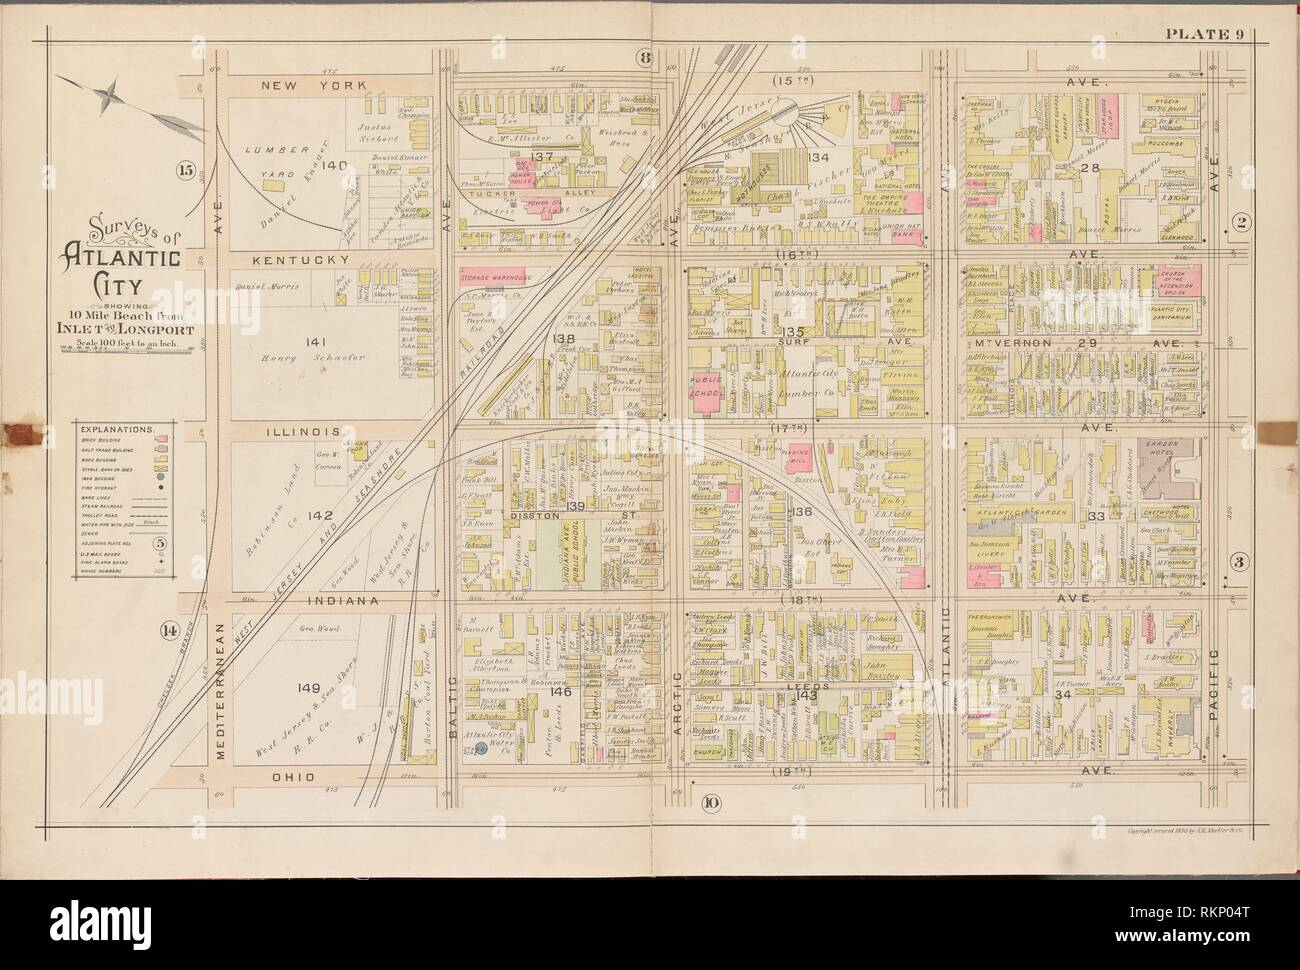 Map Of New York Ohio Area.Atlantic City Double Page Plate No 9 Map Bounded By New York Ave